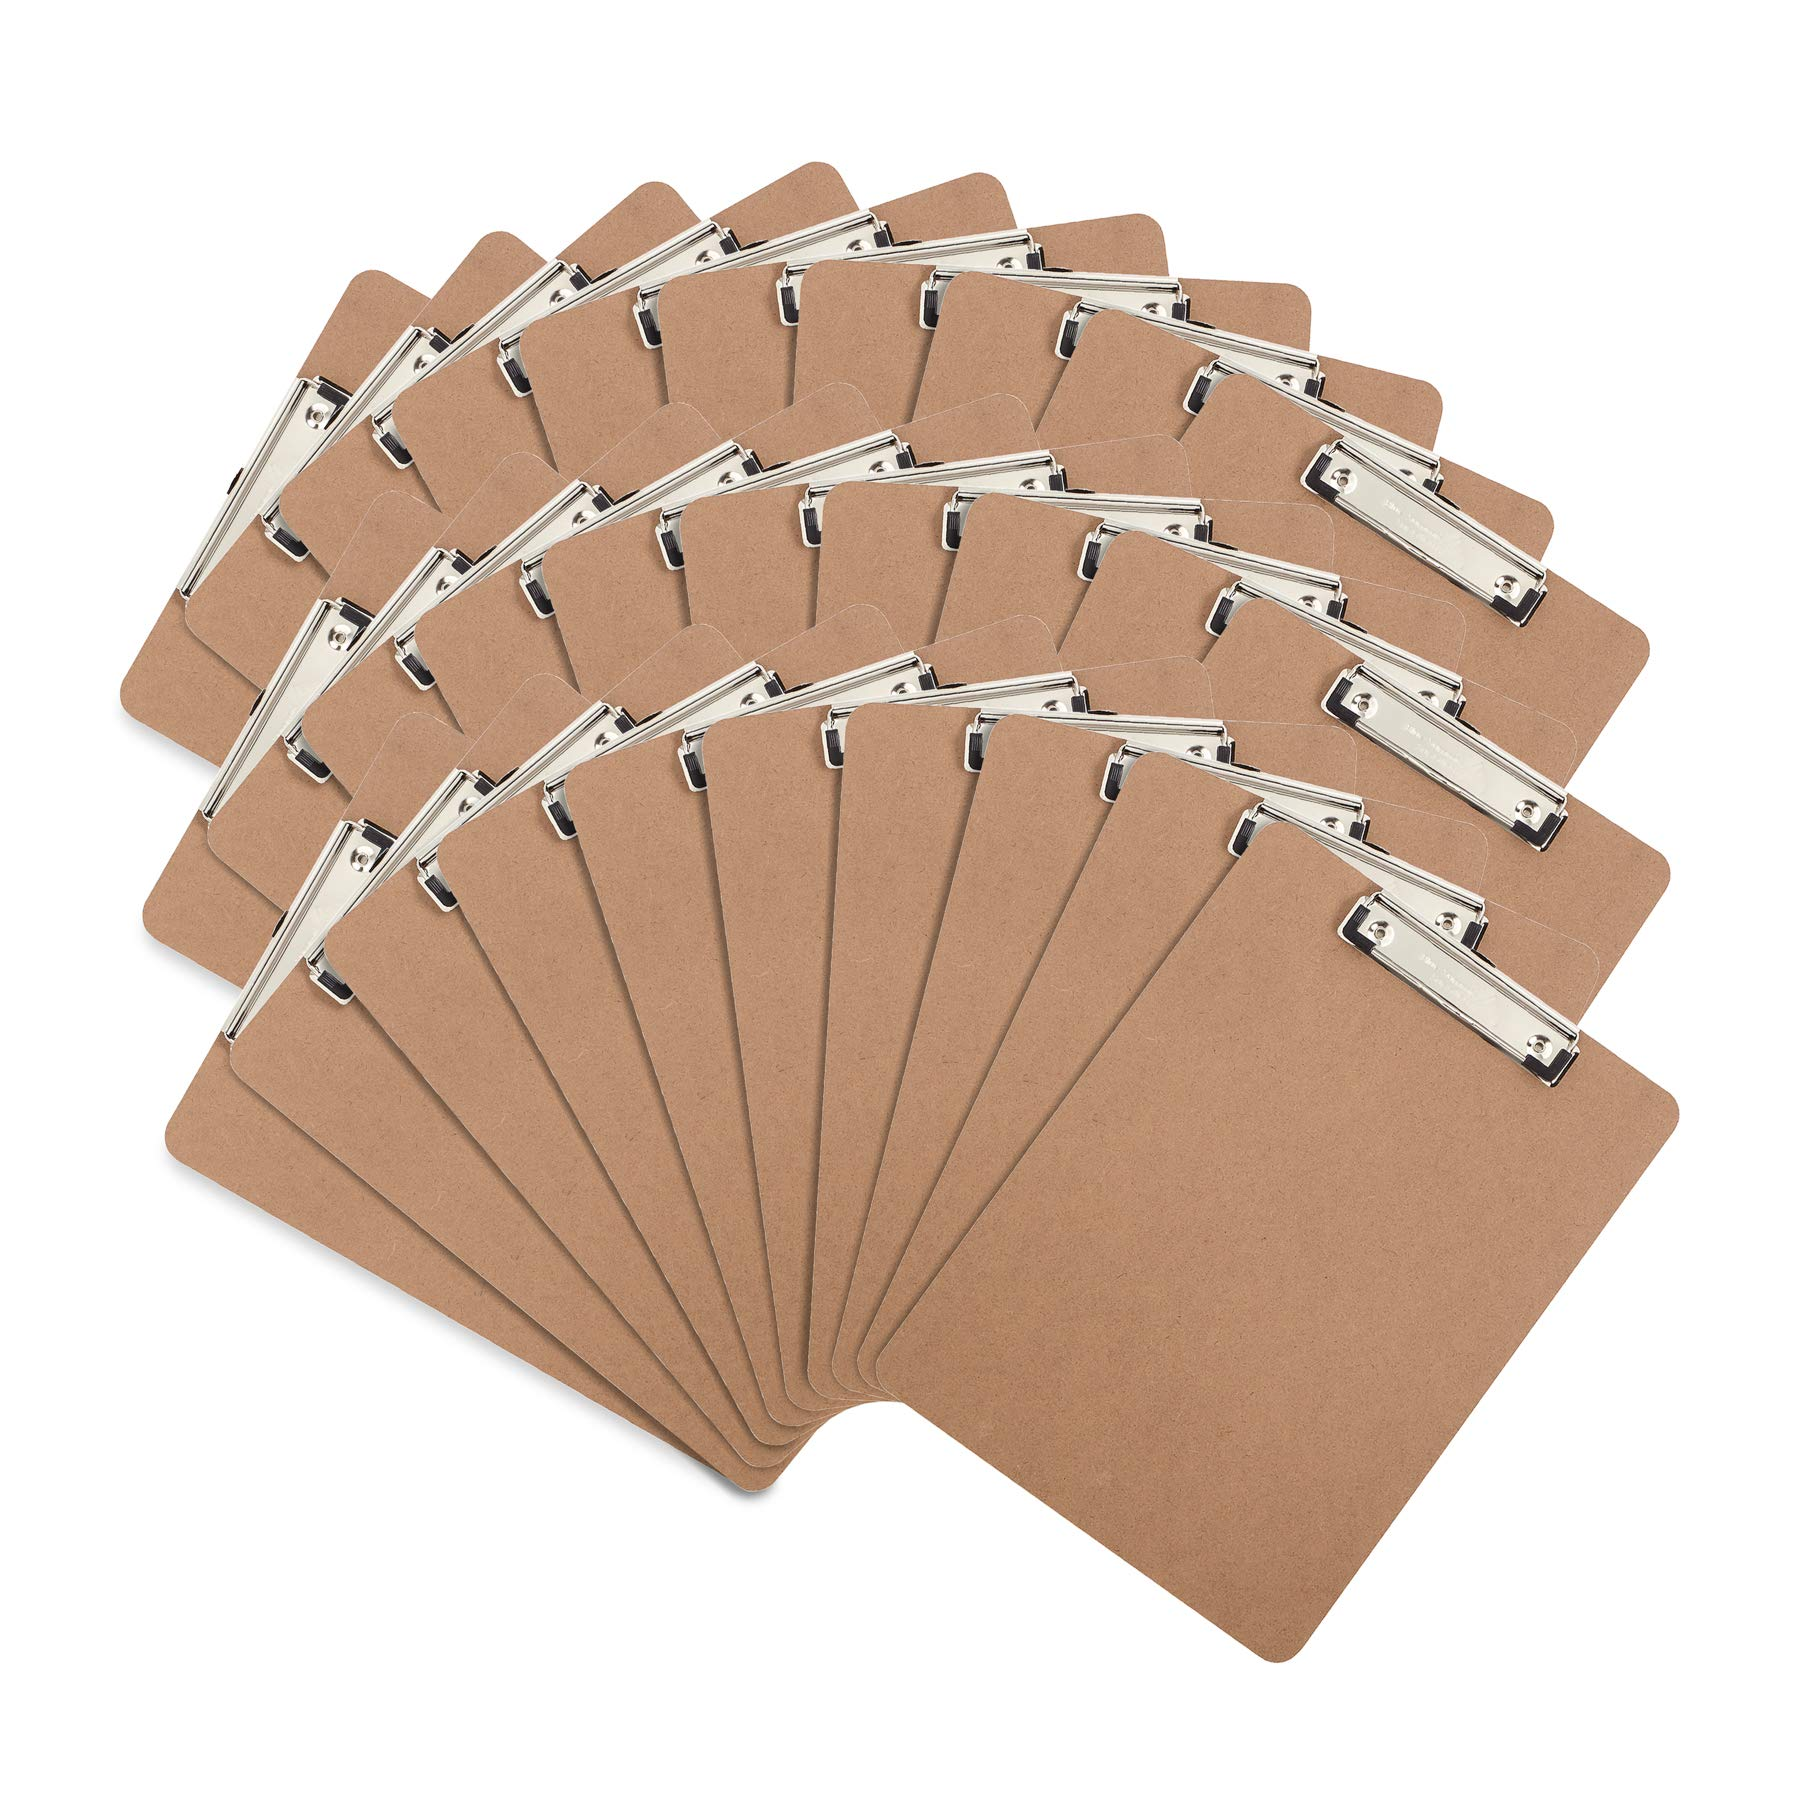 30 Hardboard Clipboards, Low Profile Clip, Designed for Classroom and Office Use, 30 Clip Boards by Blue Summit Supplies